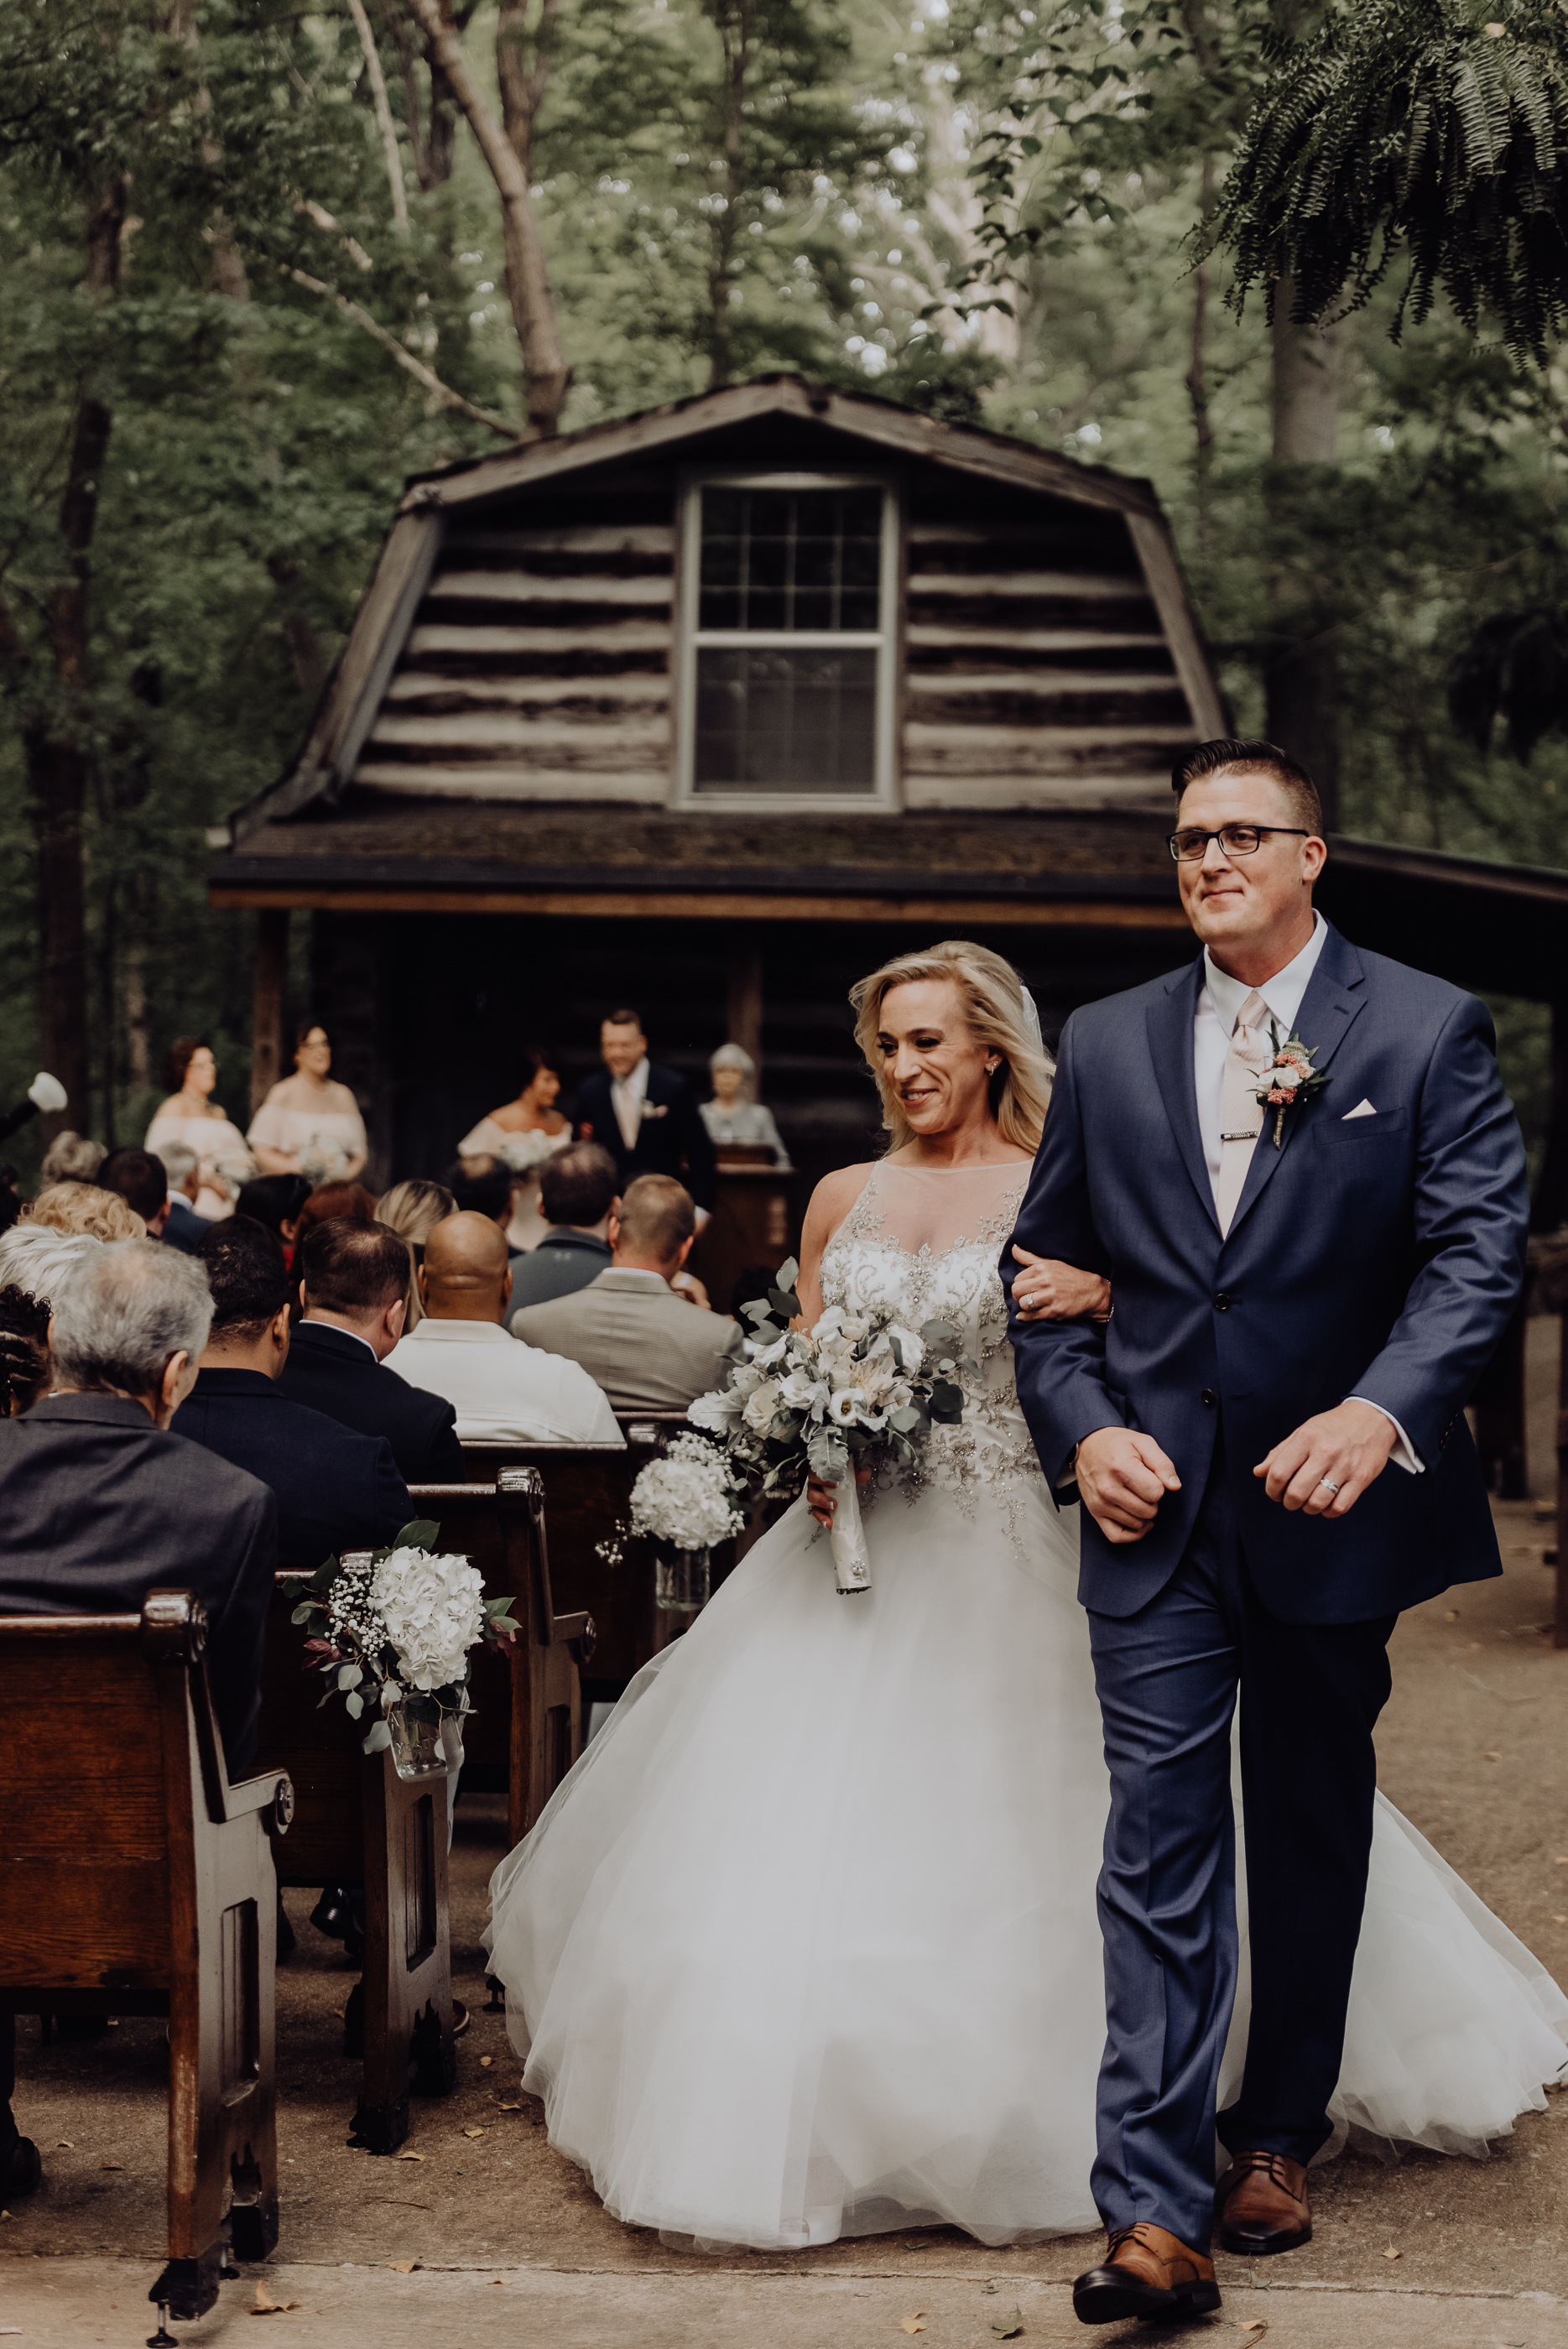 amanda and mike tennessee wedding at tanglewood house by wilde company-29.jpg